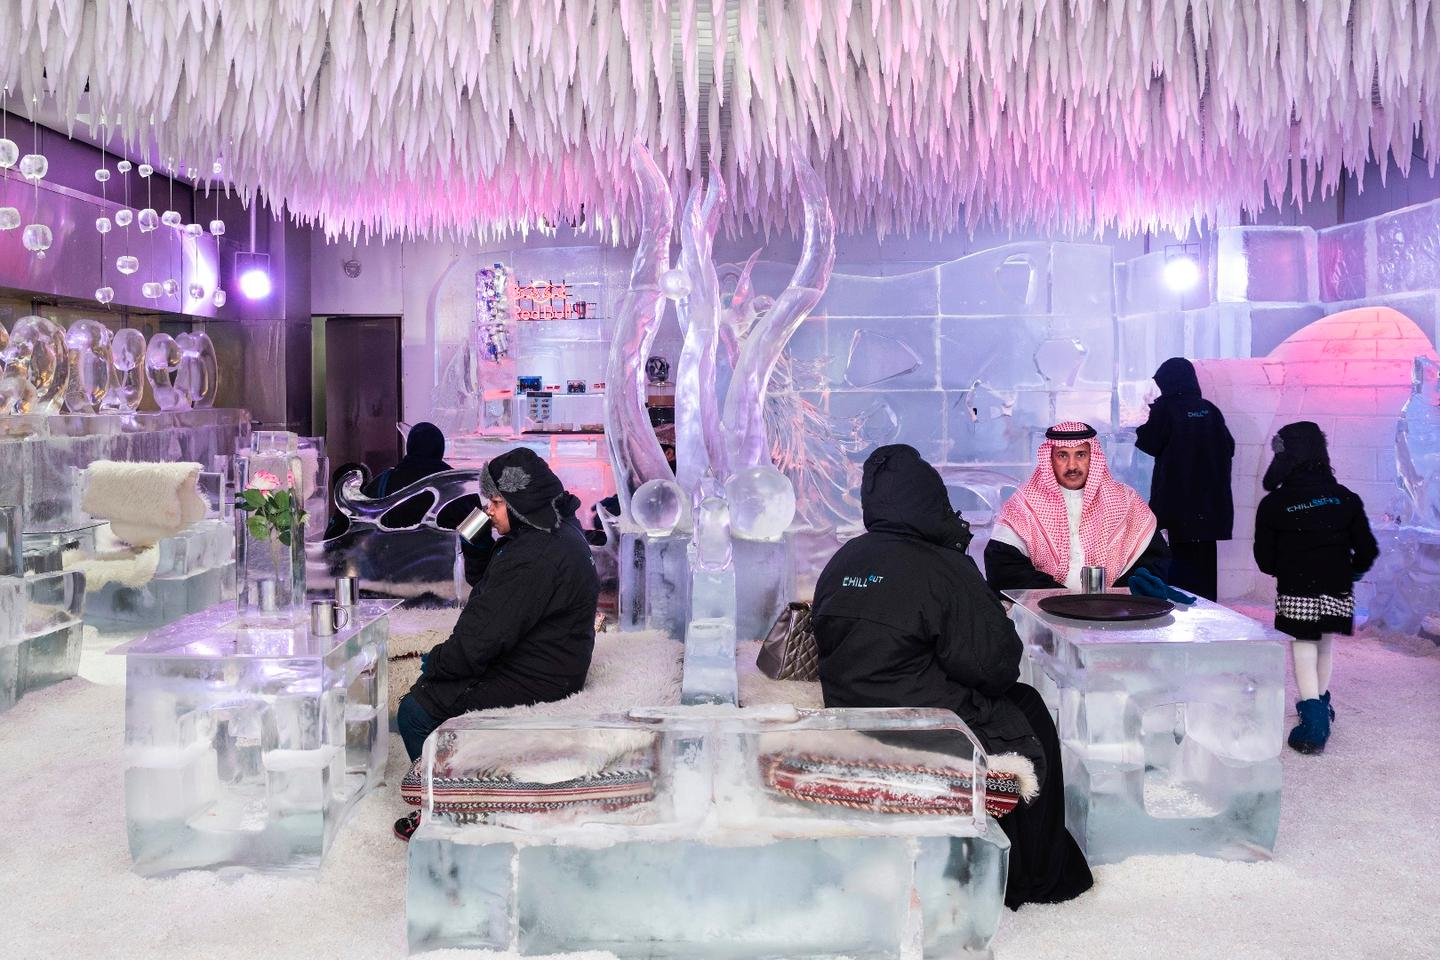 Nick Hannes winning series, Garden of Delight, was captured over five trips to Dubai across 2016 and 2017. The project tells the story of how the unique world of Dubai is creating a society that jarringly blends an exorbitant Western lifestyle with traditional Islamic values